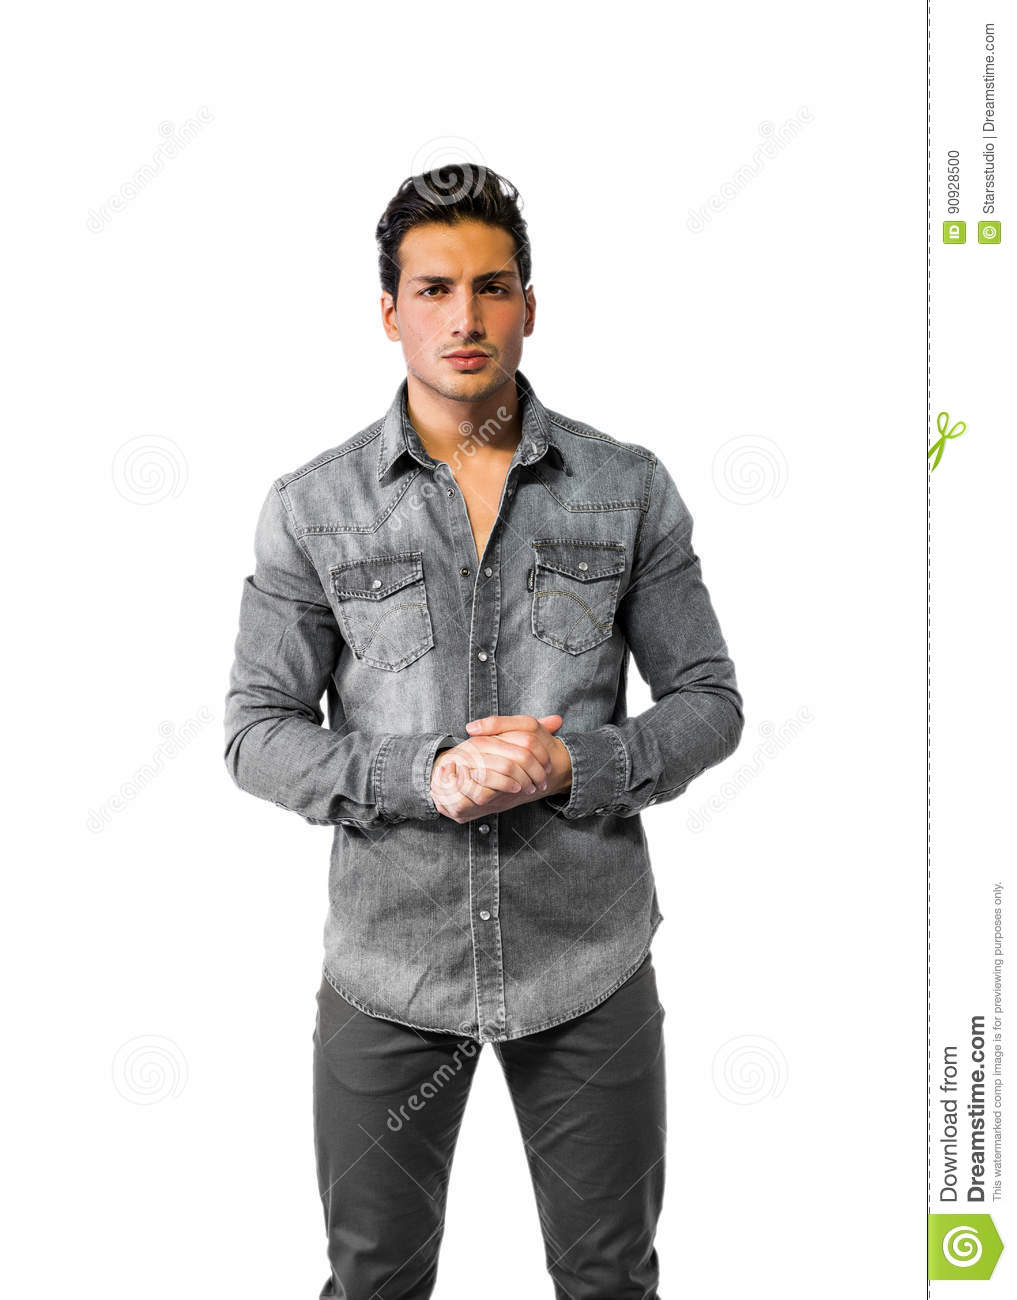 Confident Attractive Young Man With Denim Shirt Stock Photo Image